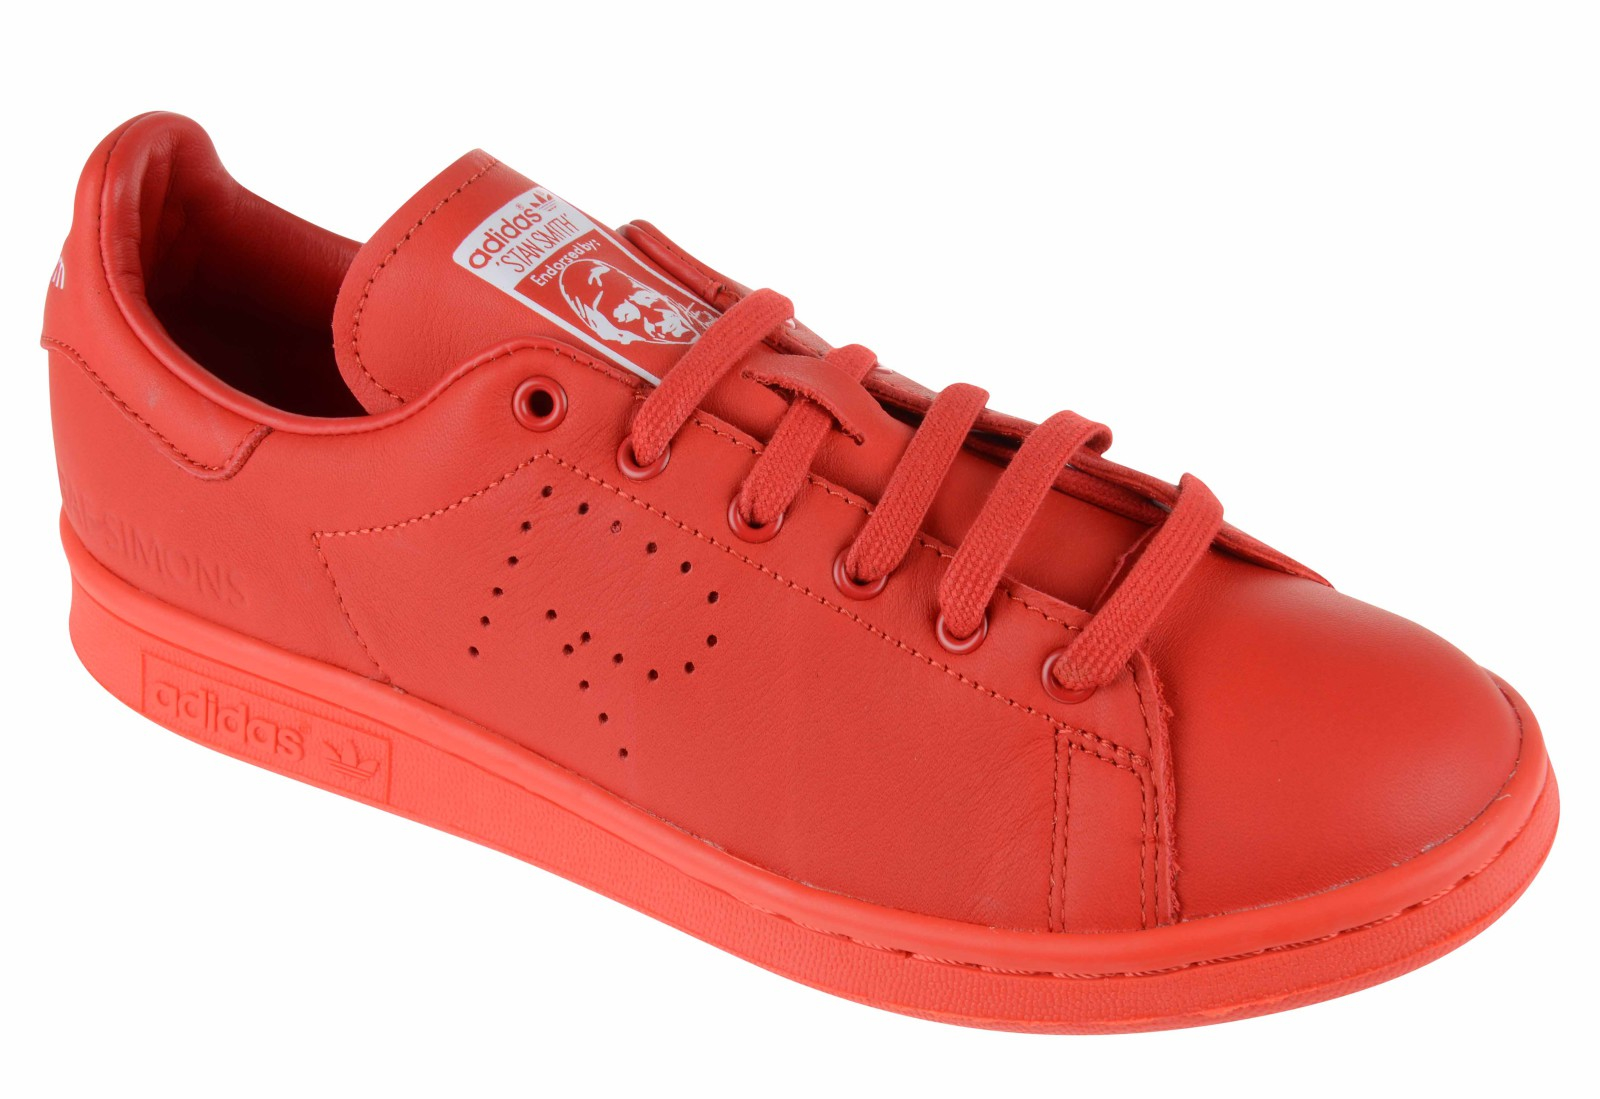 adidas by raf simons stan smith leather sneakers in red lyst. Black Bedroom Furniture Sets. Home Design Ideas